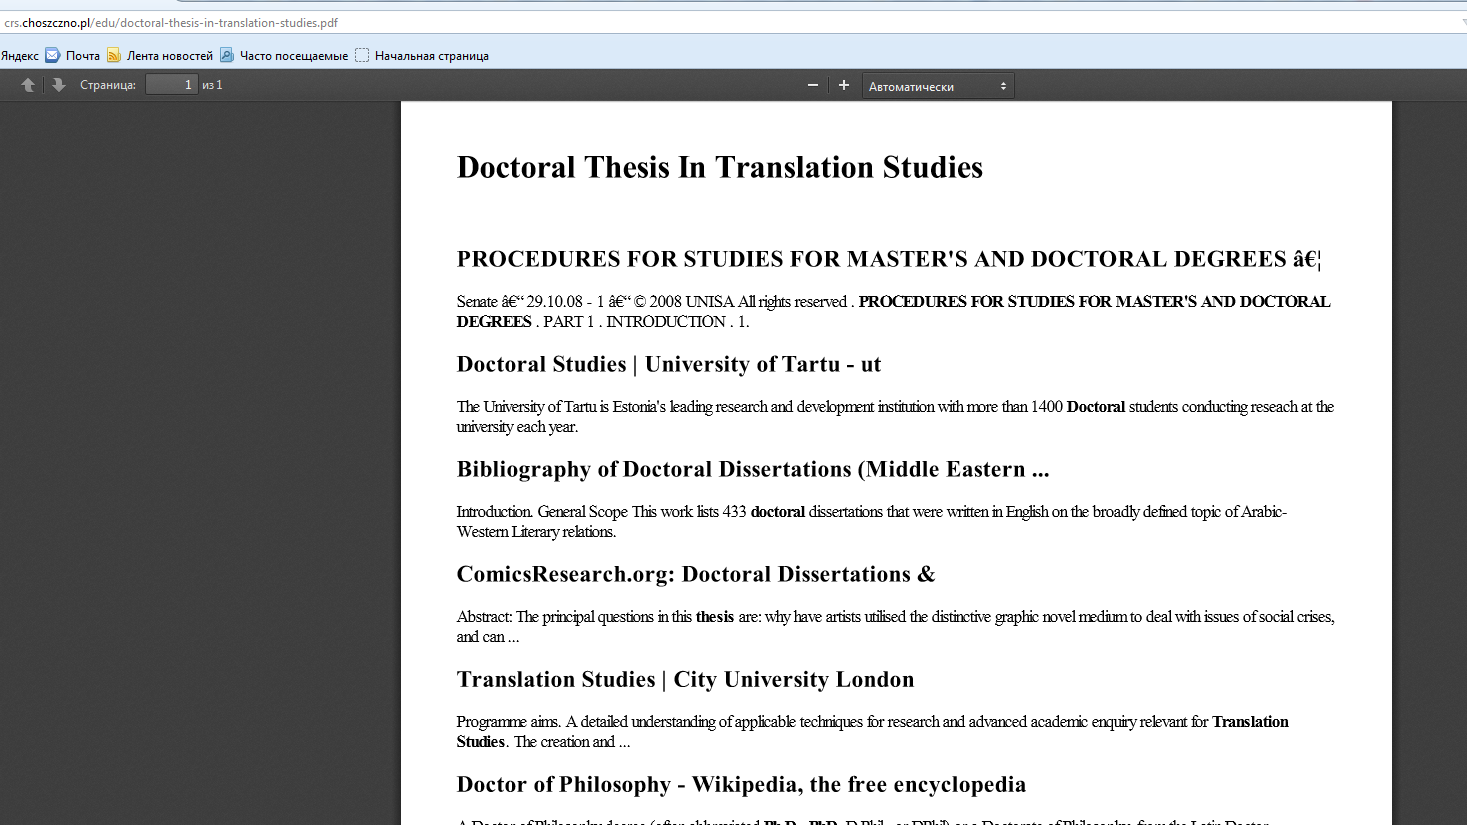 bibliography of doctoral dissertations